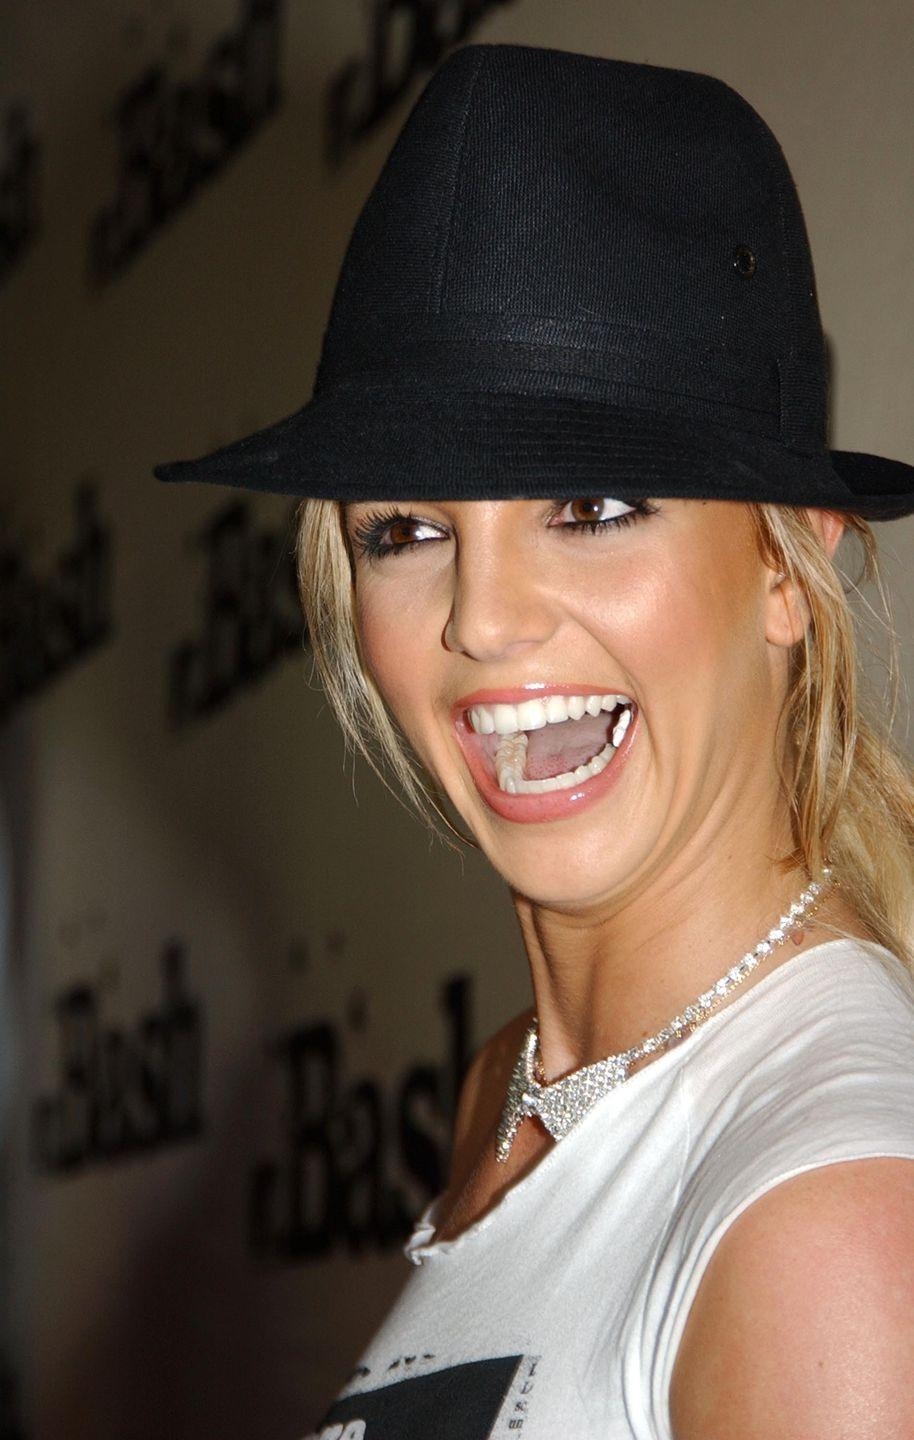 <p>Have you ever seen a more glorious fedora? Also, peep the rhinestone bow-tie necklace, the ripped tee, and the piece of gum still in her mouth.</p>